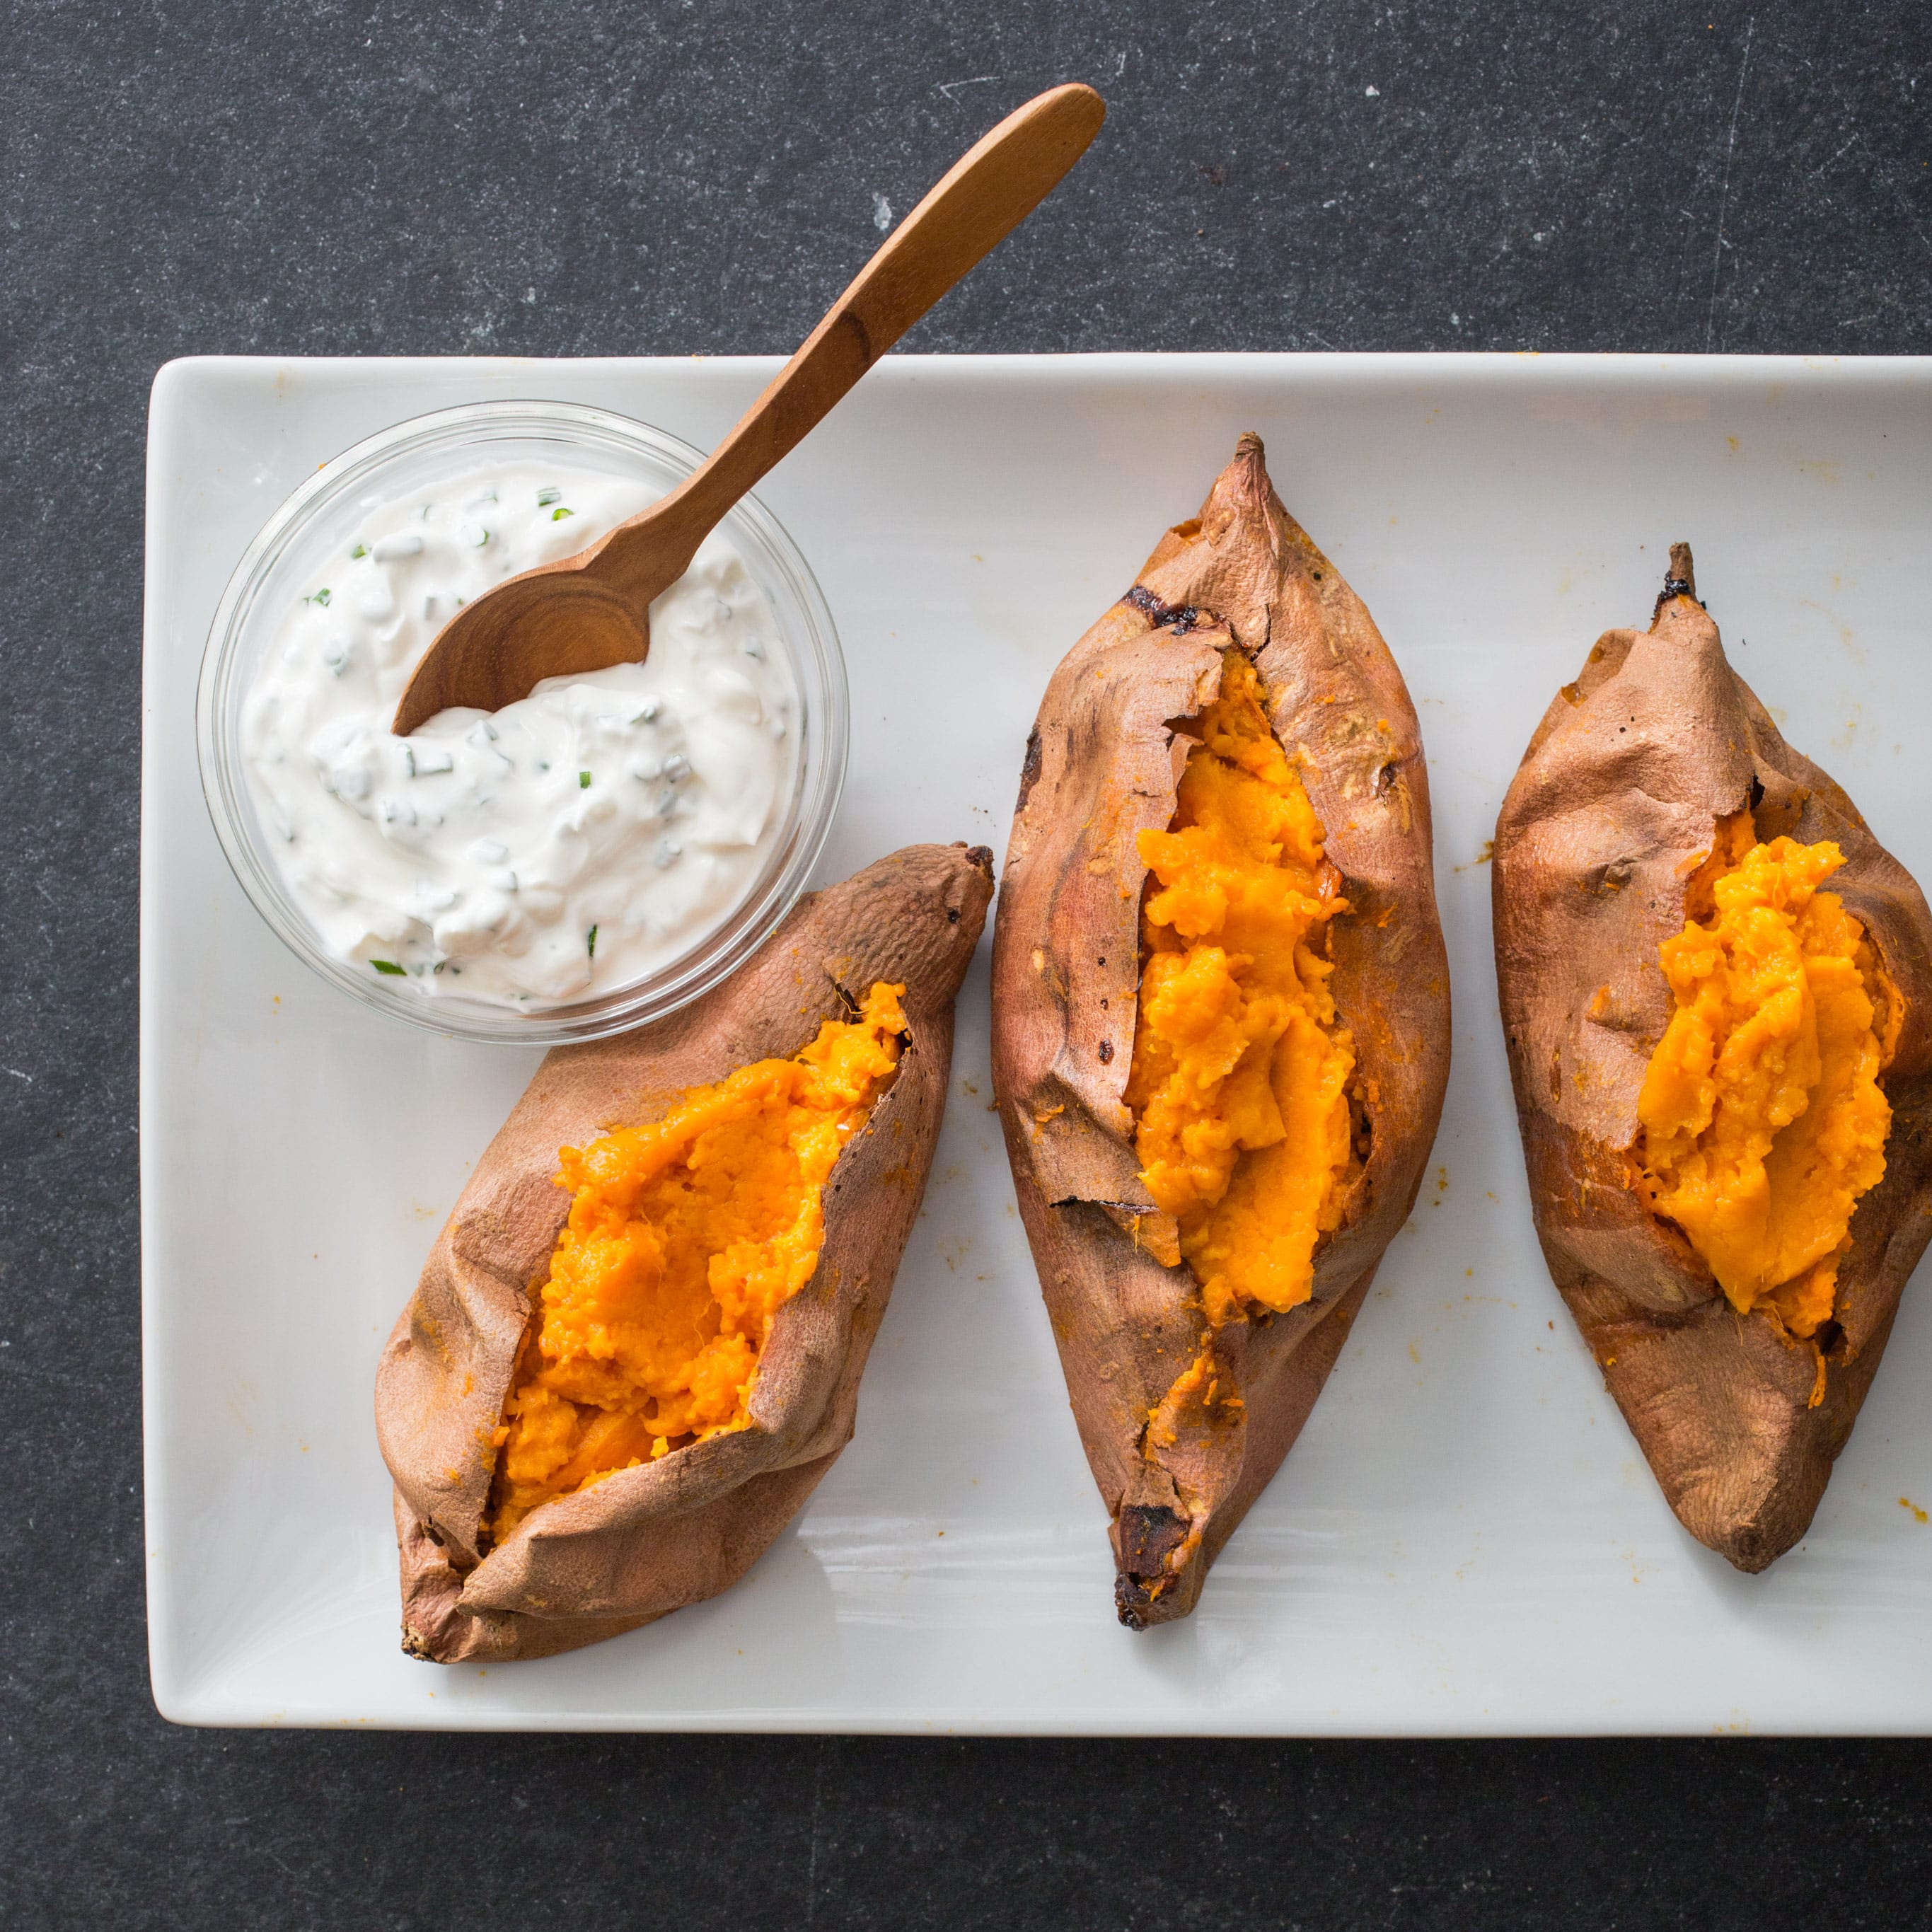 Roasted Yams: Best Baked Sweet Potatoes